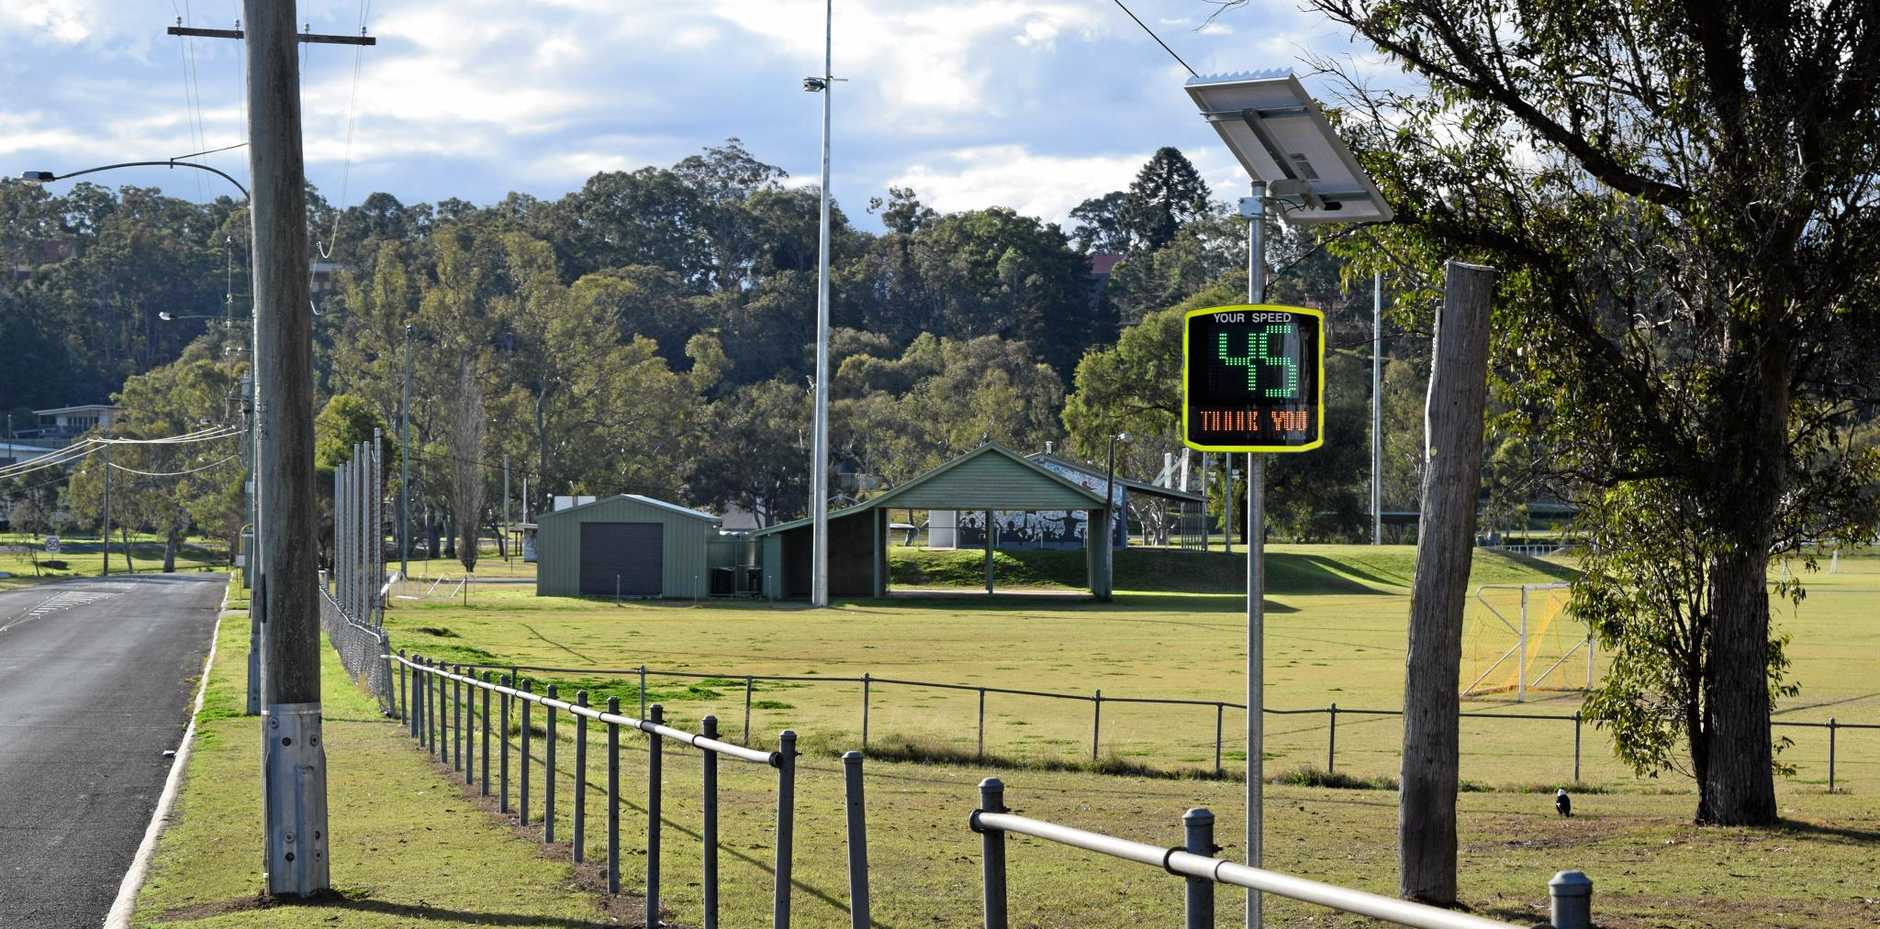 Speed indicator signs have been erected along Park Road.